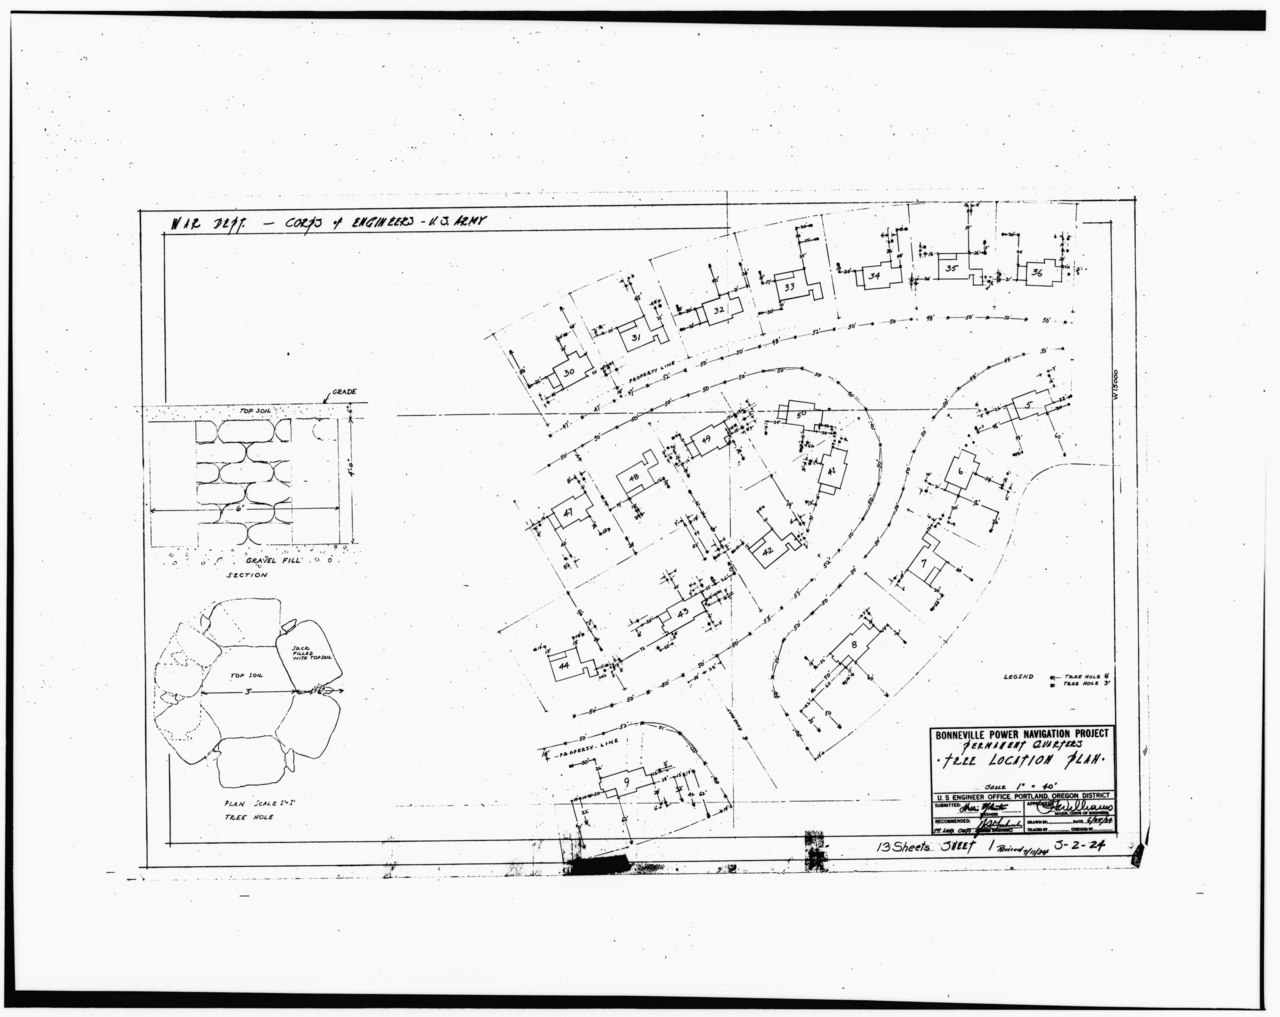 File Photocopy Of Original Landscape Drawing Dated 25